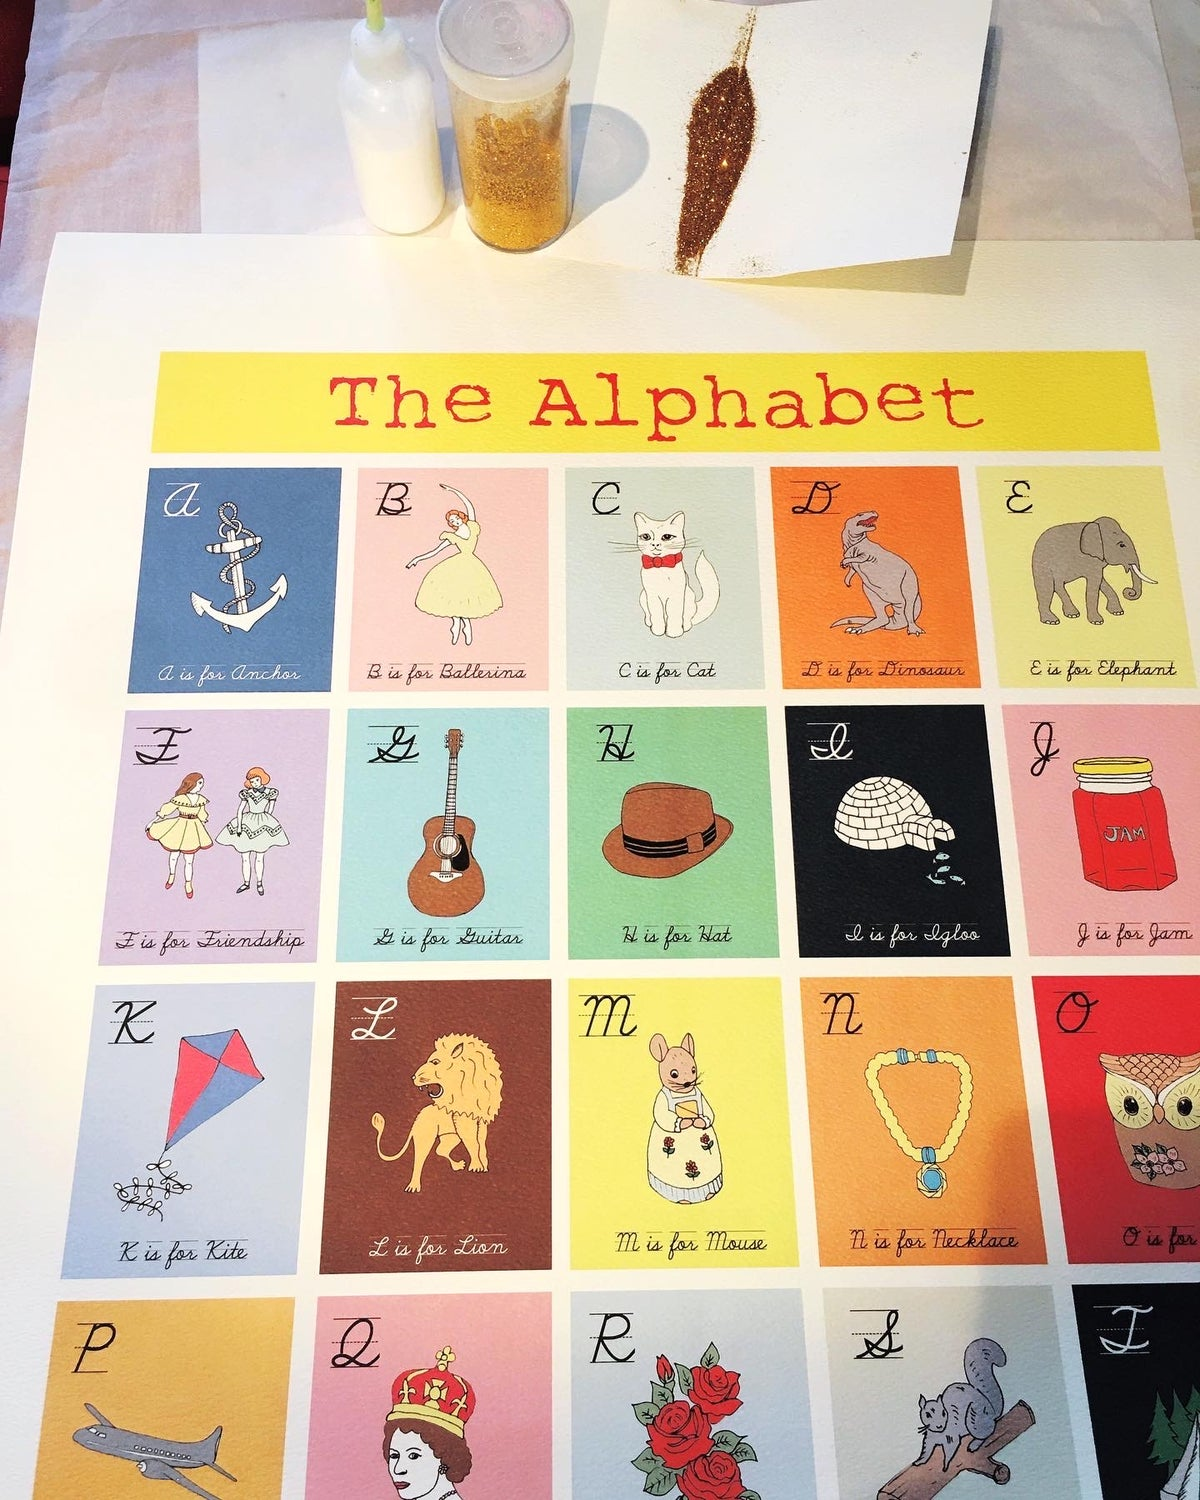 Limited Edition Hand Decorated Alphabet Print (50x70cm)